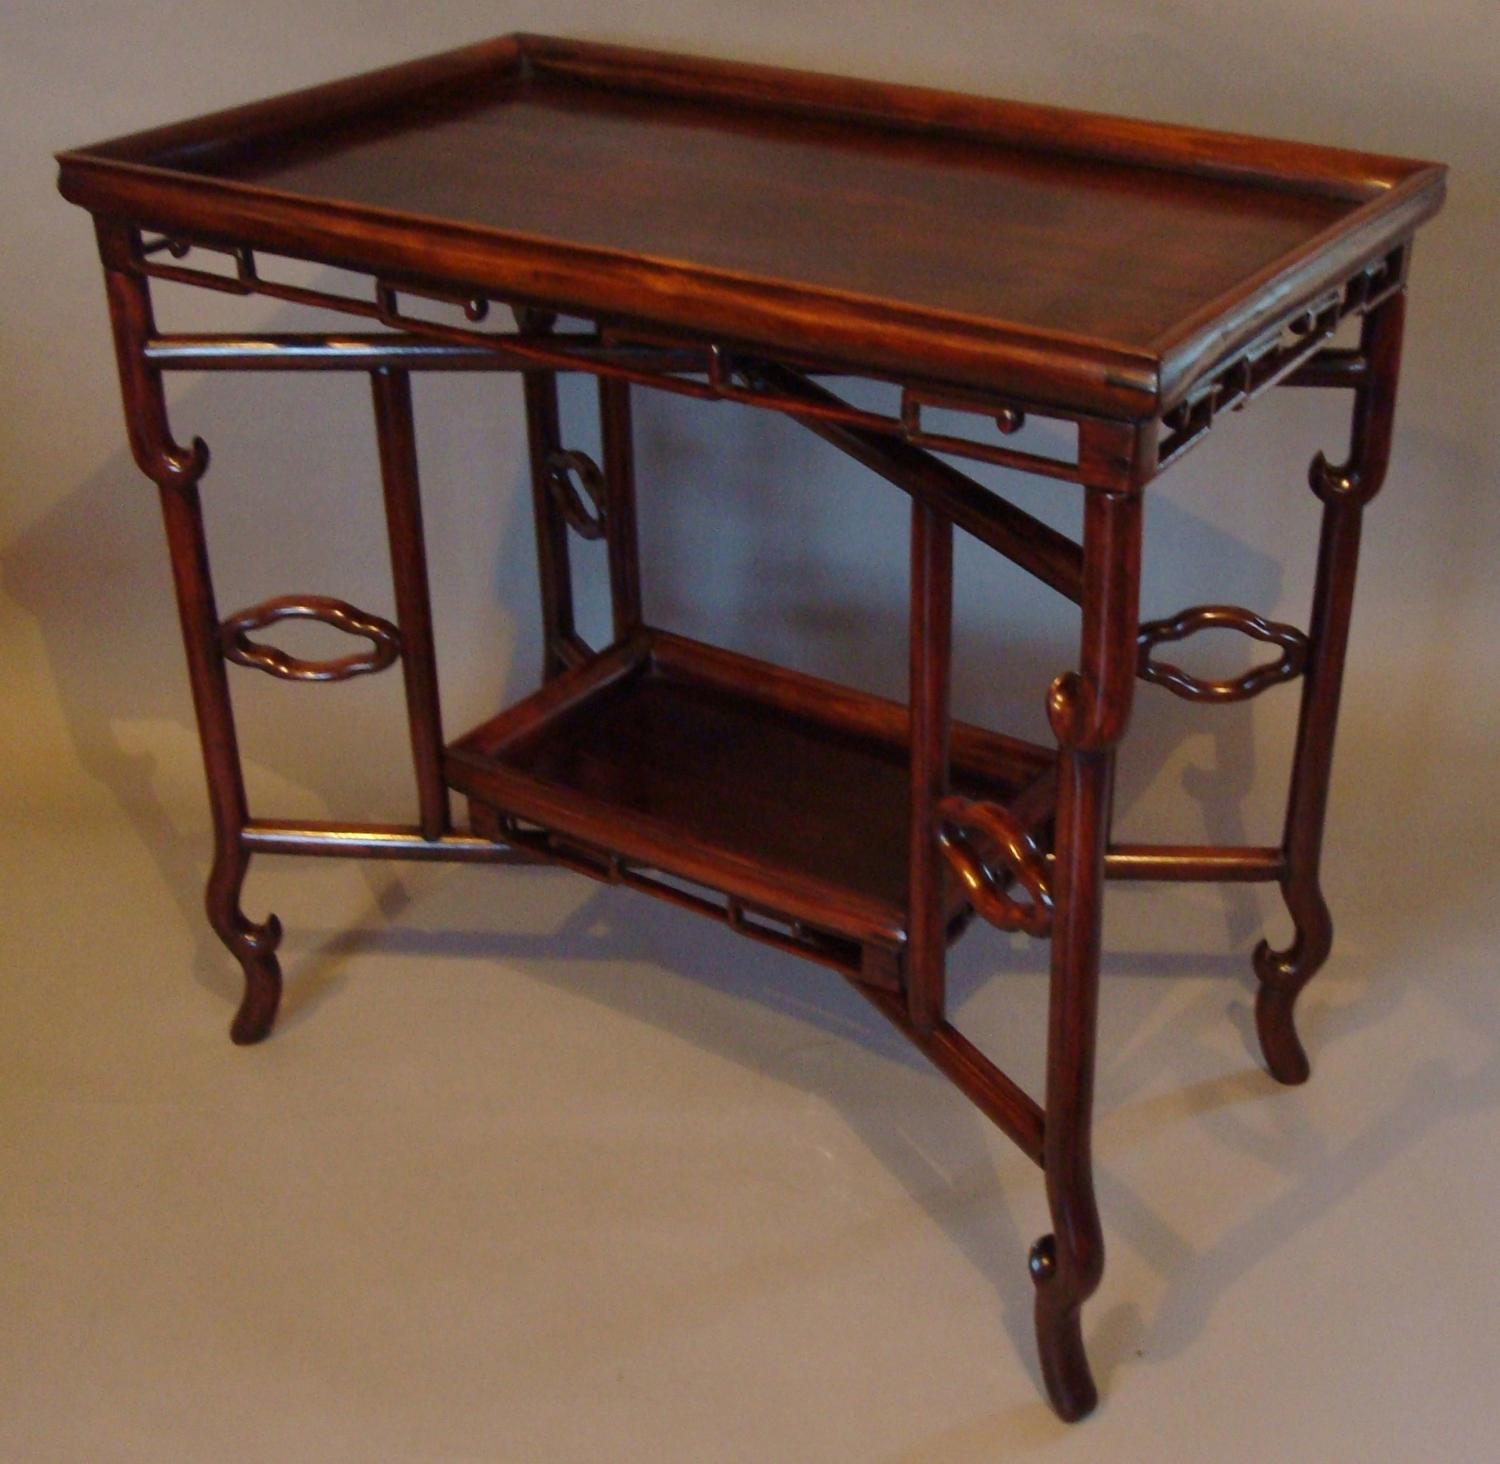 C19th Chinese Hongmu tray table